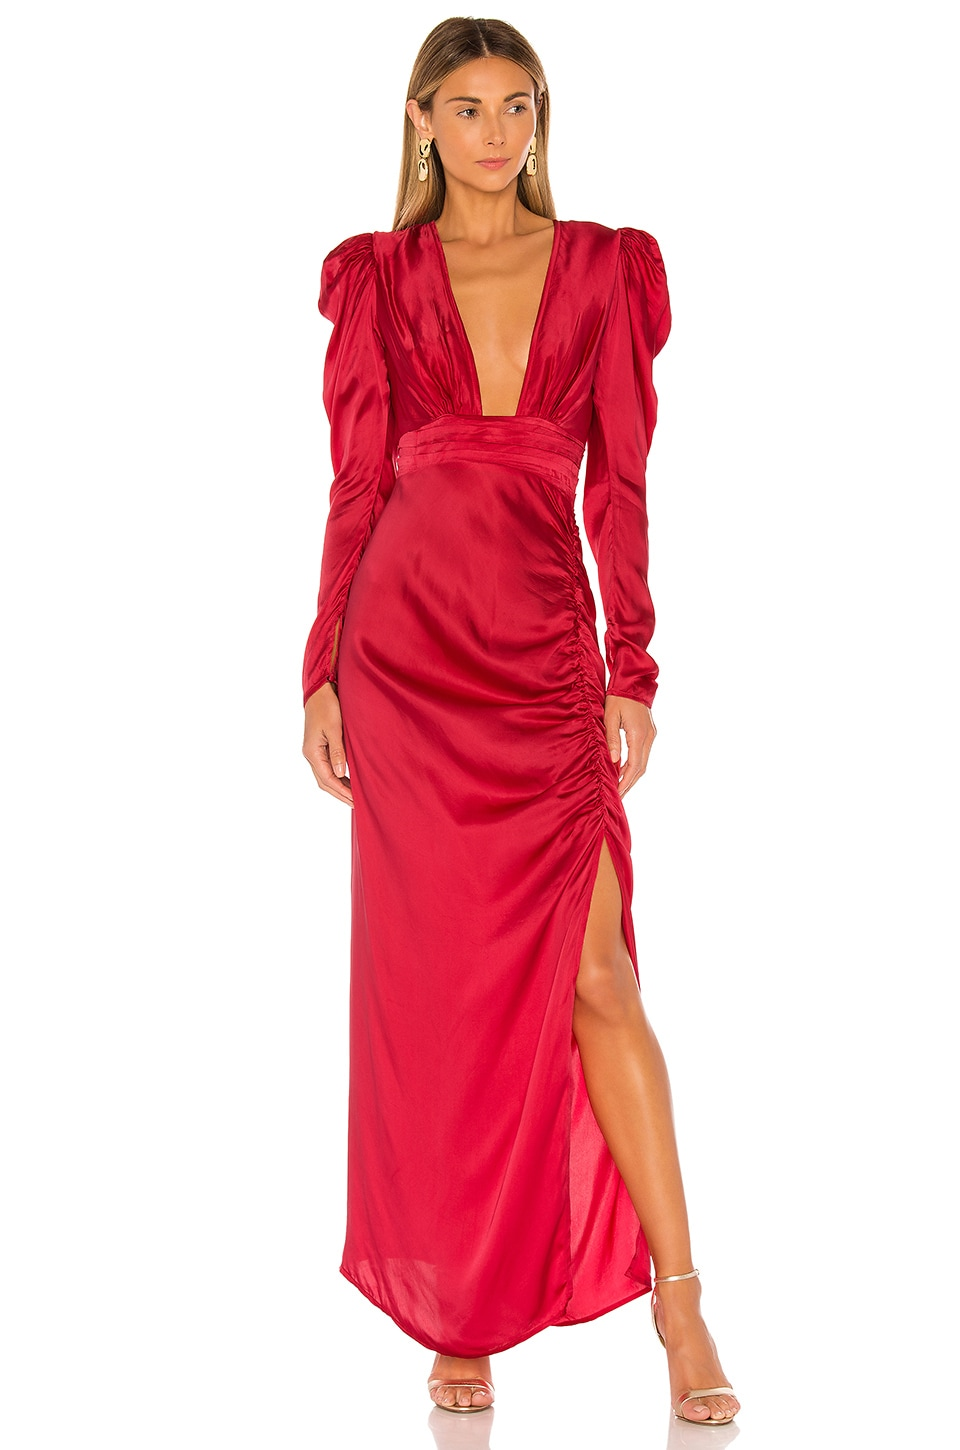 ROCOCO SAND x REVOLVE Poppy Deep V Gown in Bright Red